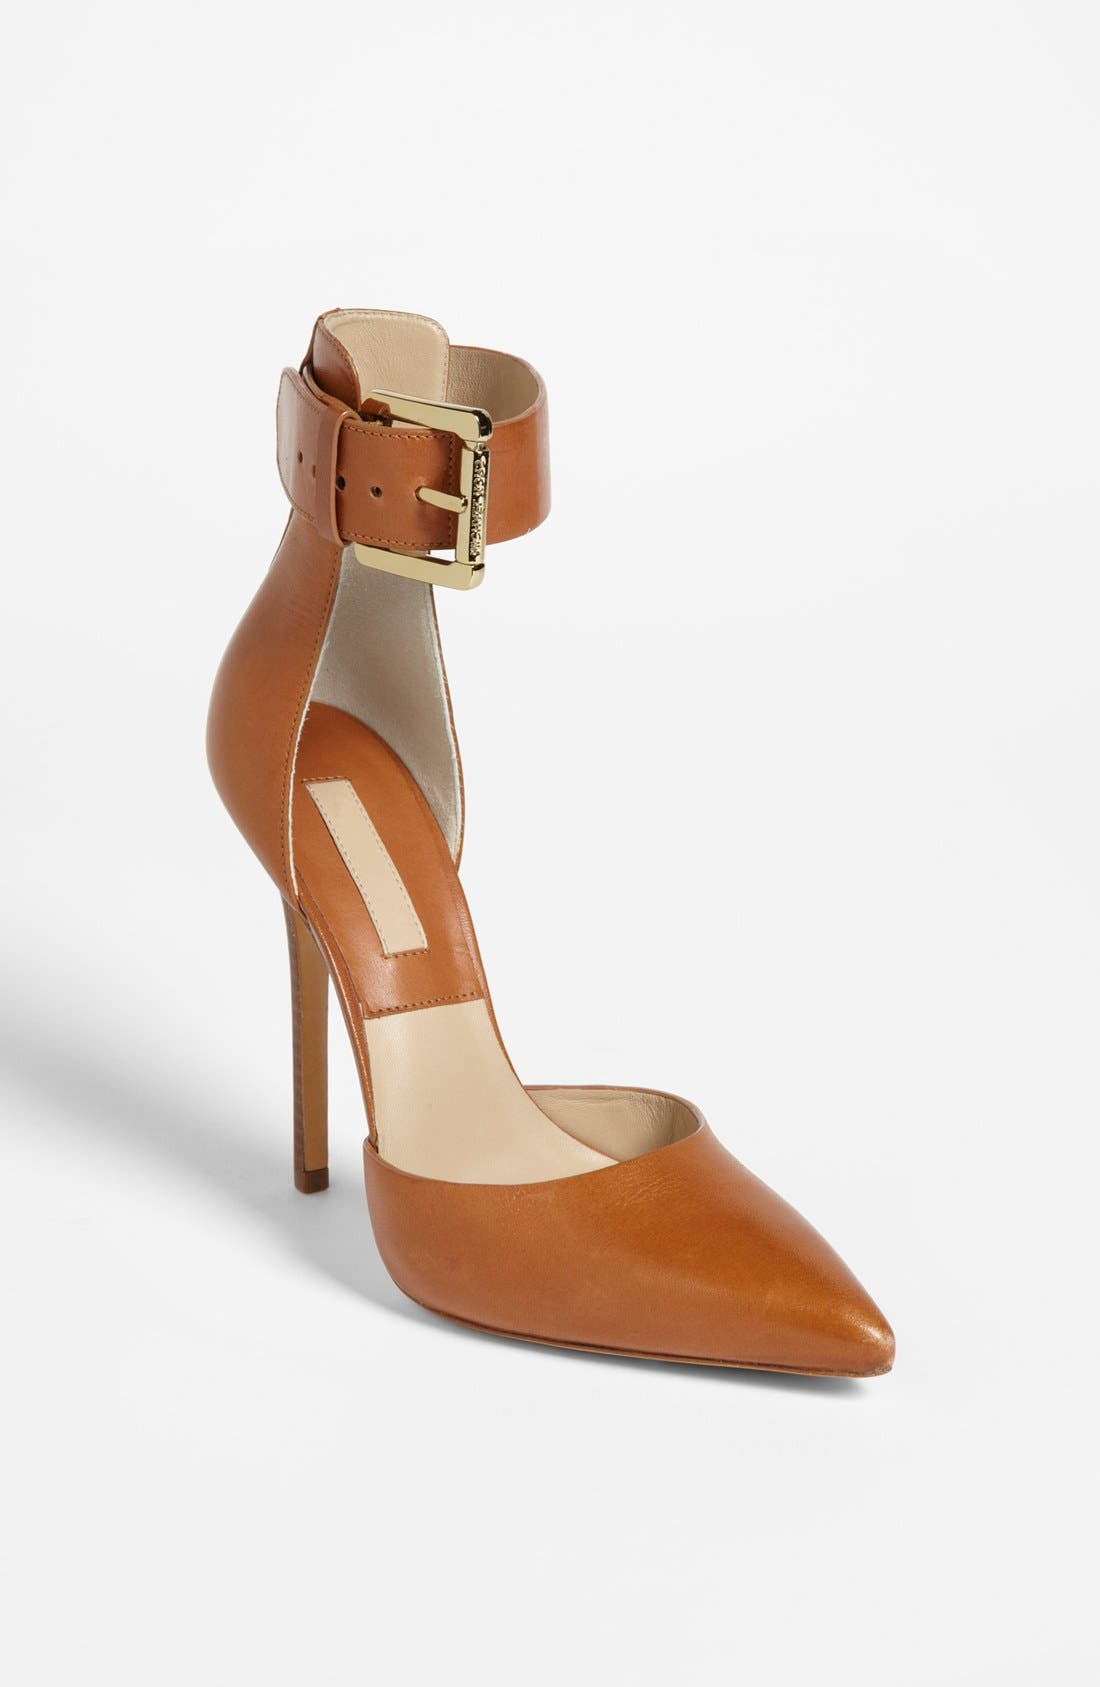 Alternate Image 1 Selected - Michael Kors 'Adelaide' Pump